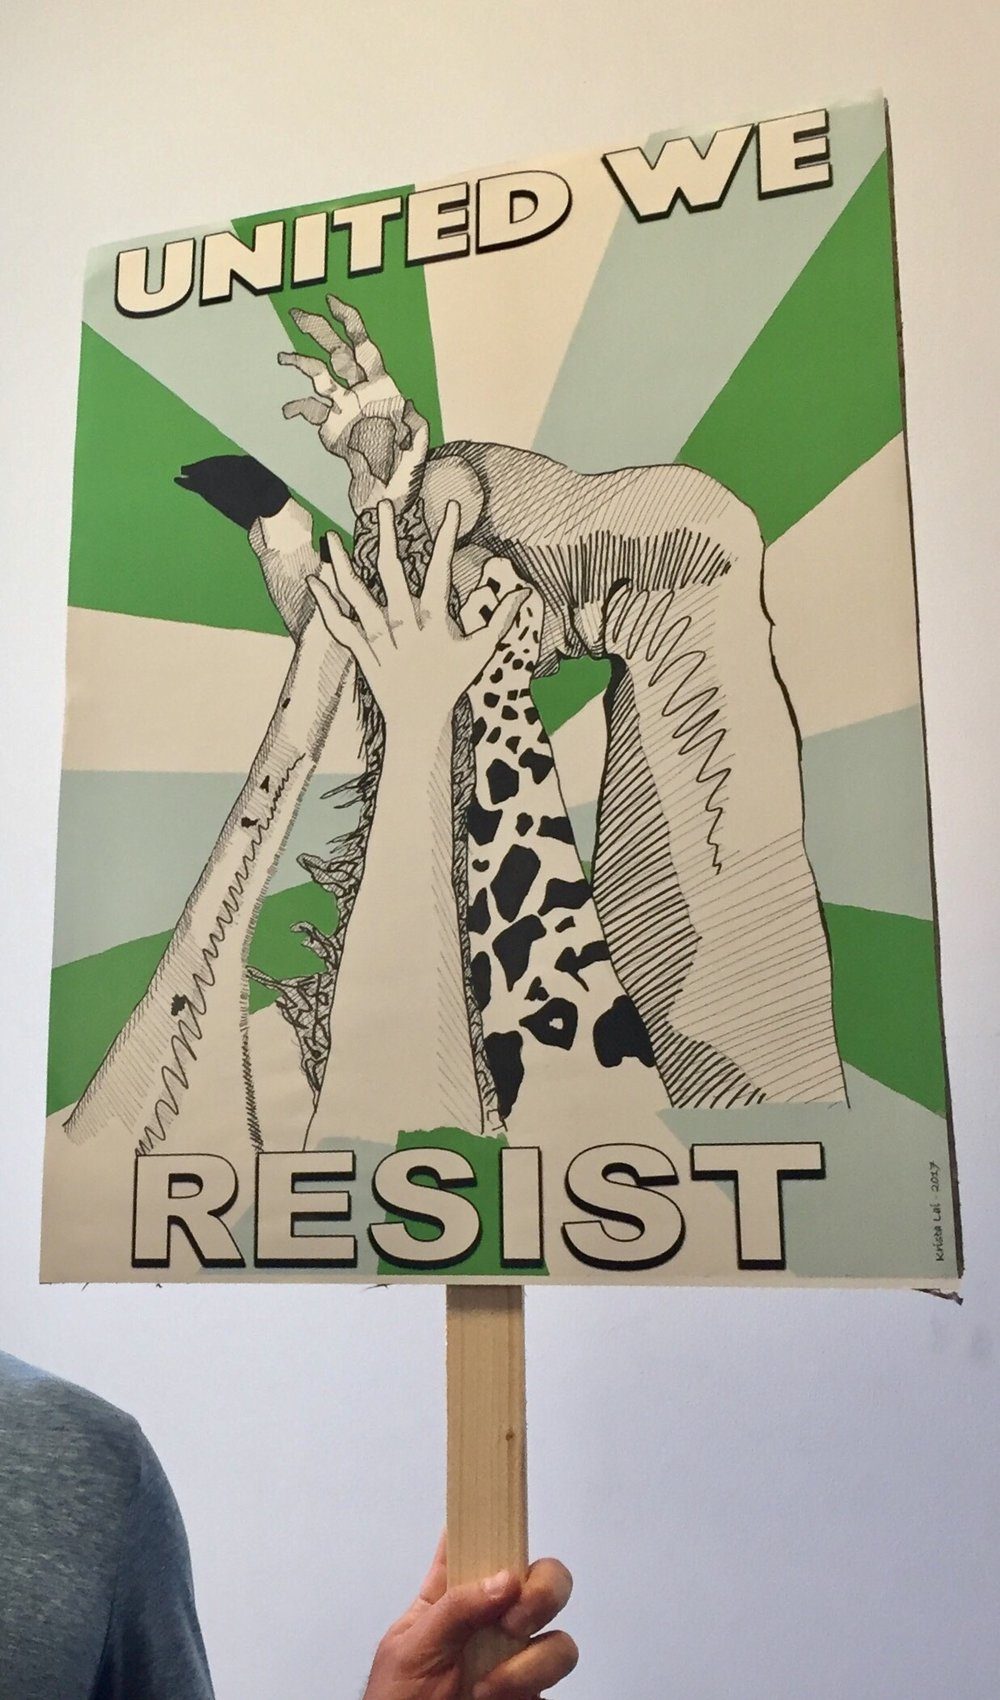 """""""United We Resist"""" protest sign after editing, scanning and printing on signage material. By Krista Dedrick Lai and Ernie Migali"""